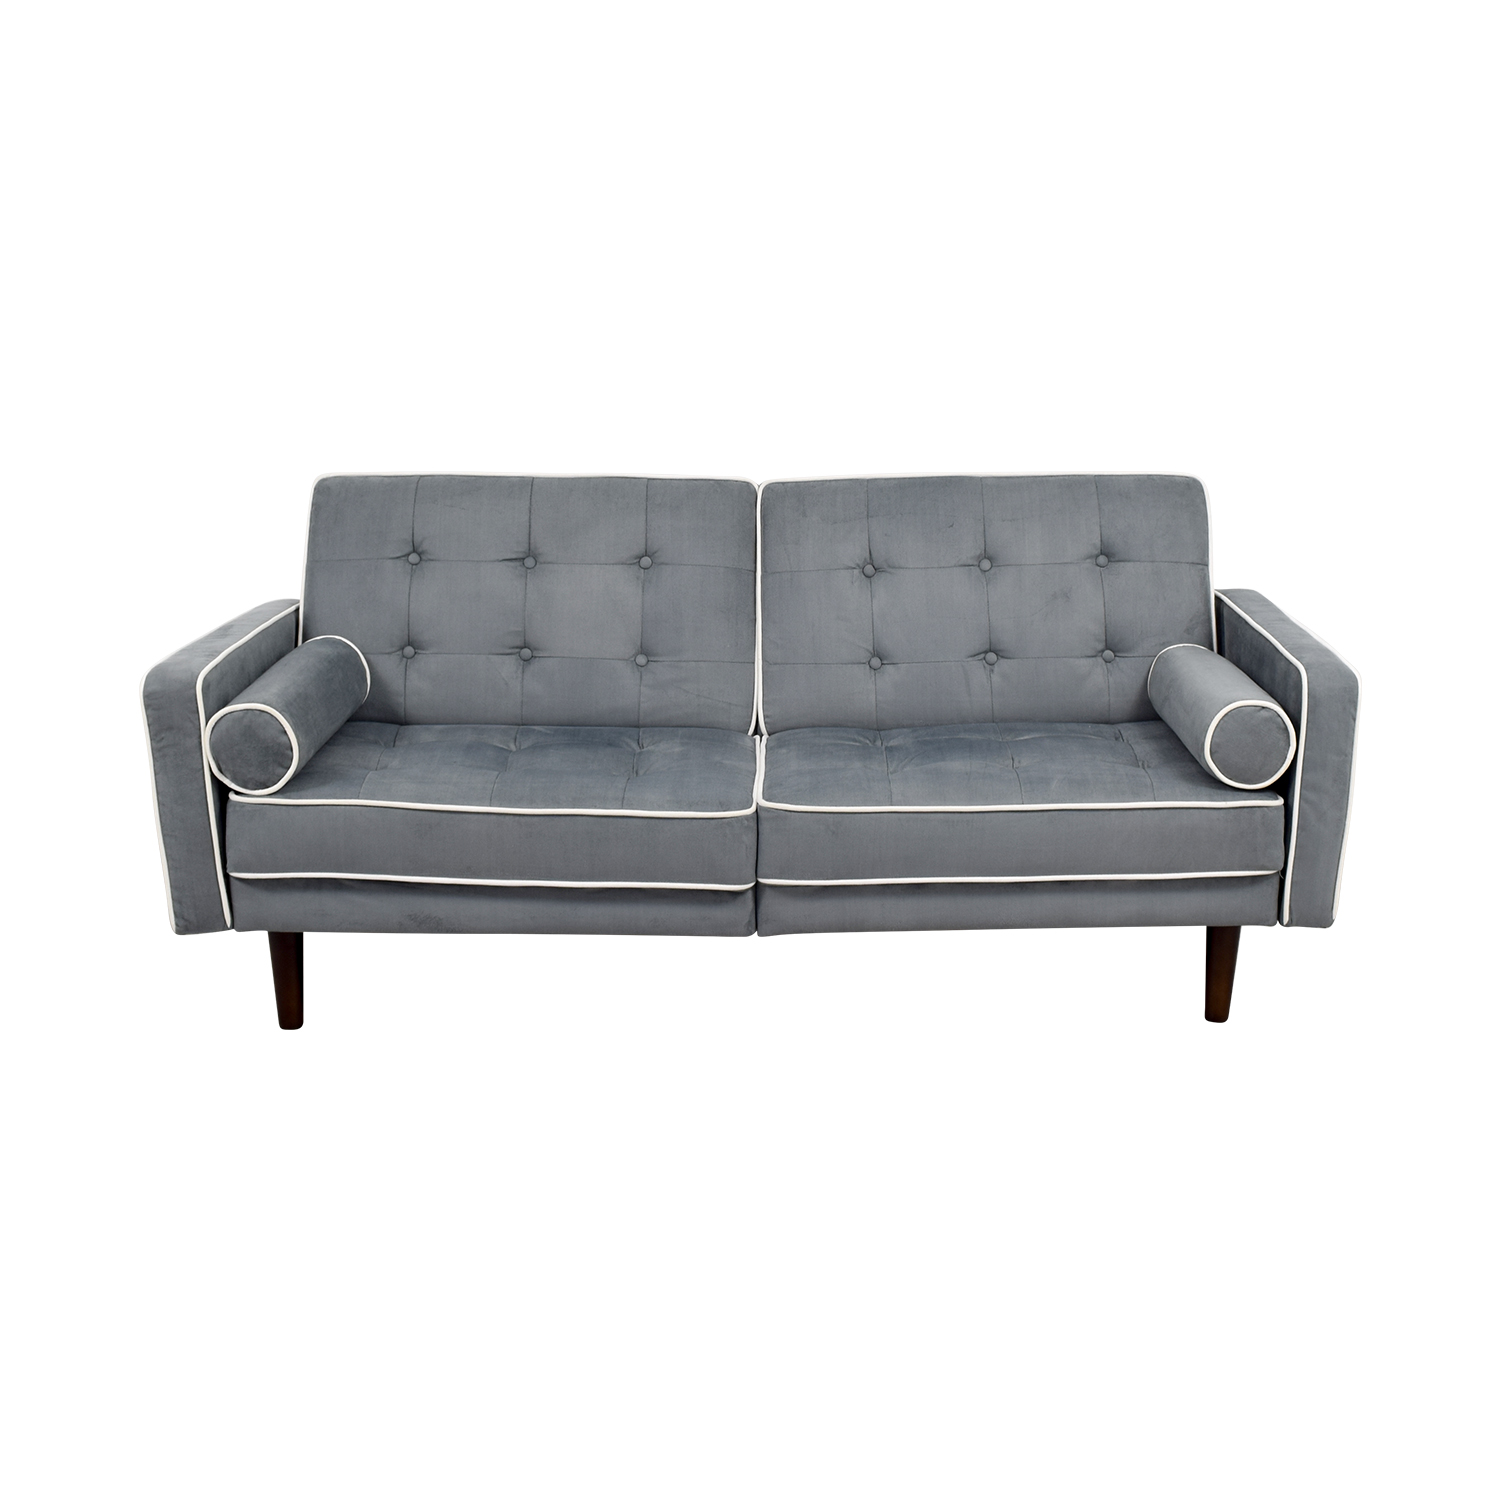 Wayfair sofa bed futon futons wayfair sofa beds in every for Wayfair furniture sectional sofa